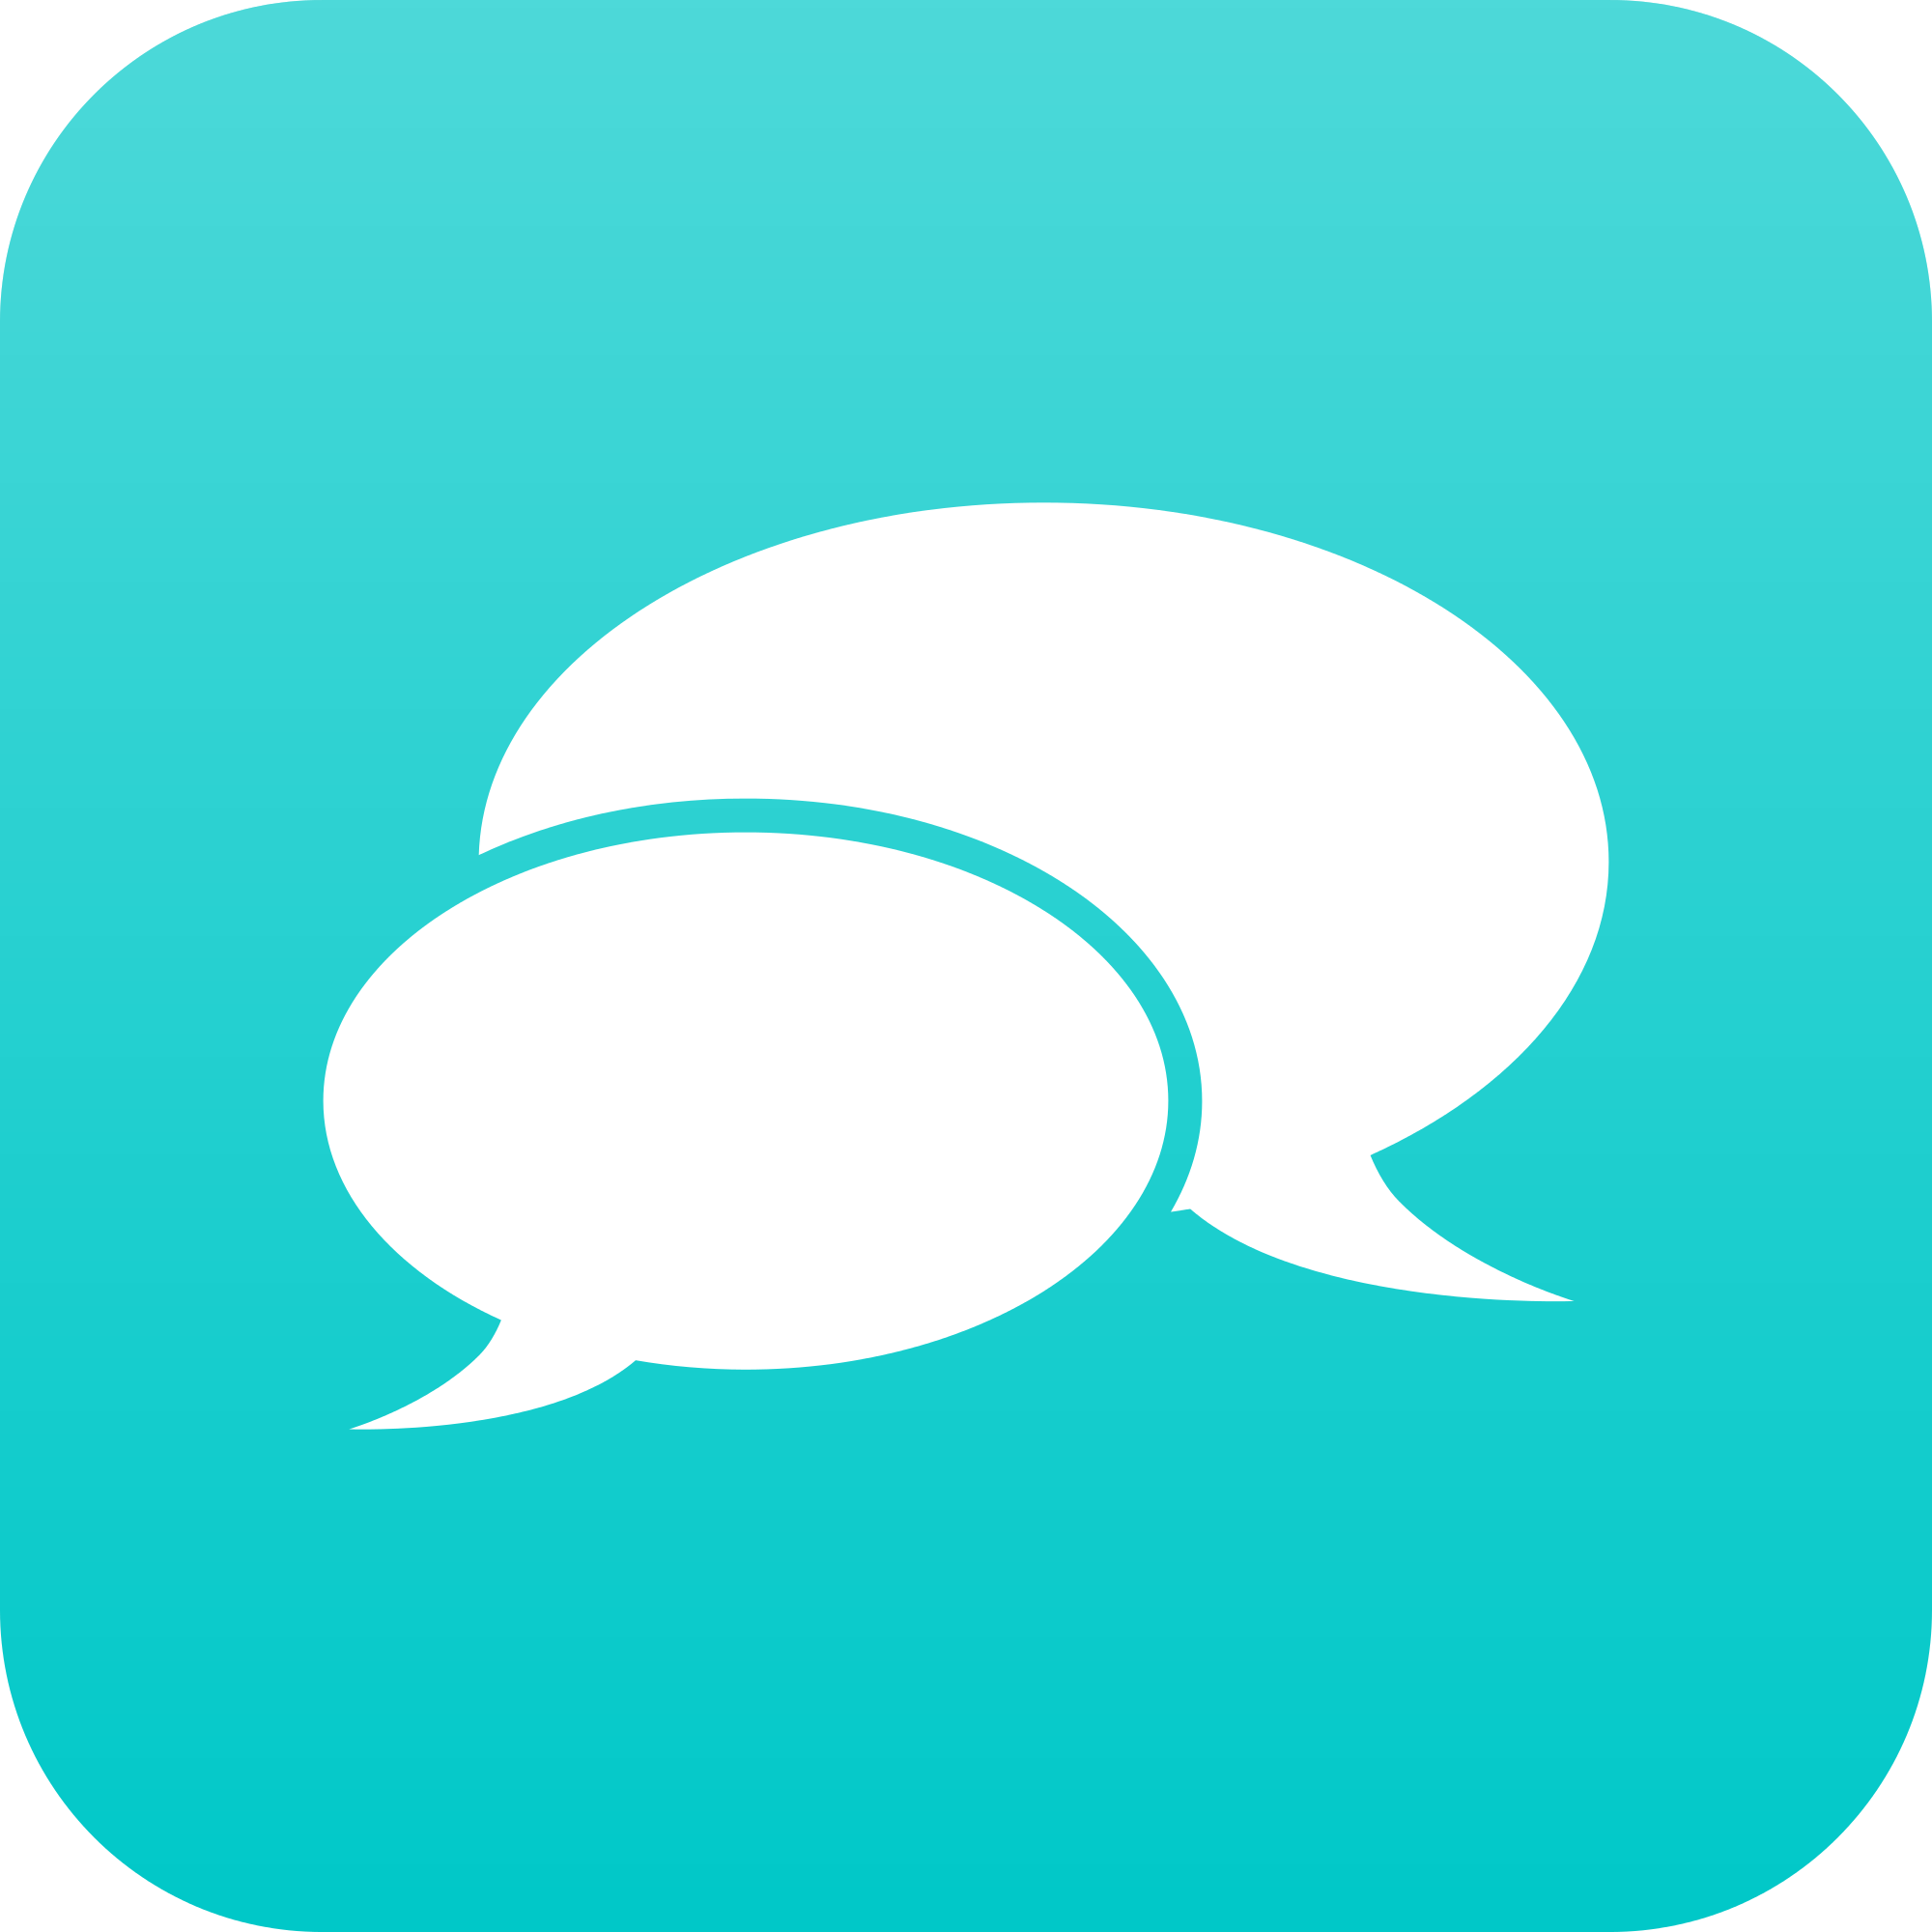 Remind app clipart svg freeuse download File:Tokyoship Talk icon 2.svg - Wikimedia Commons svg freeuse download